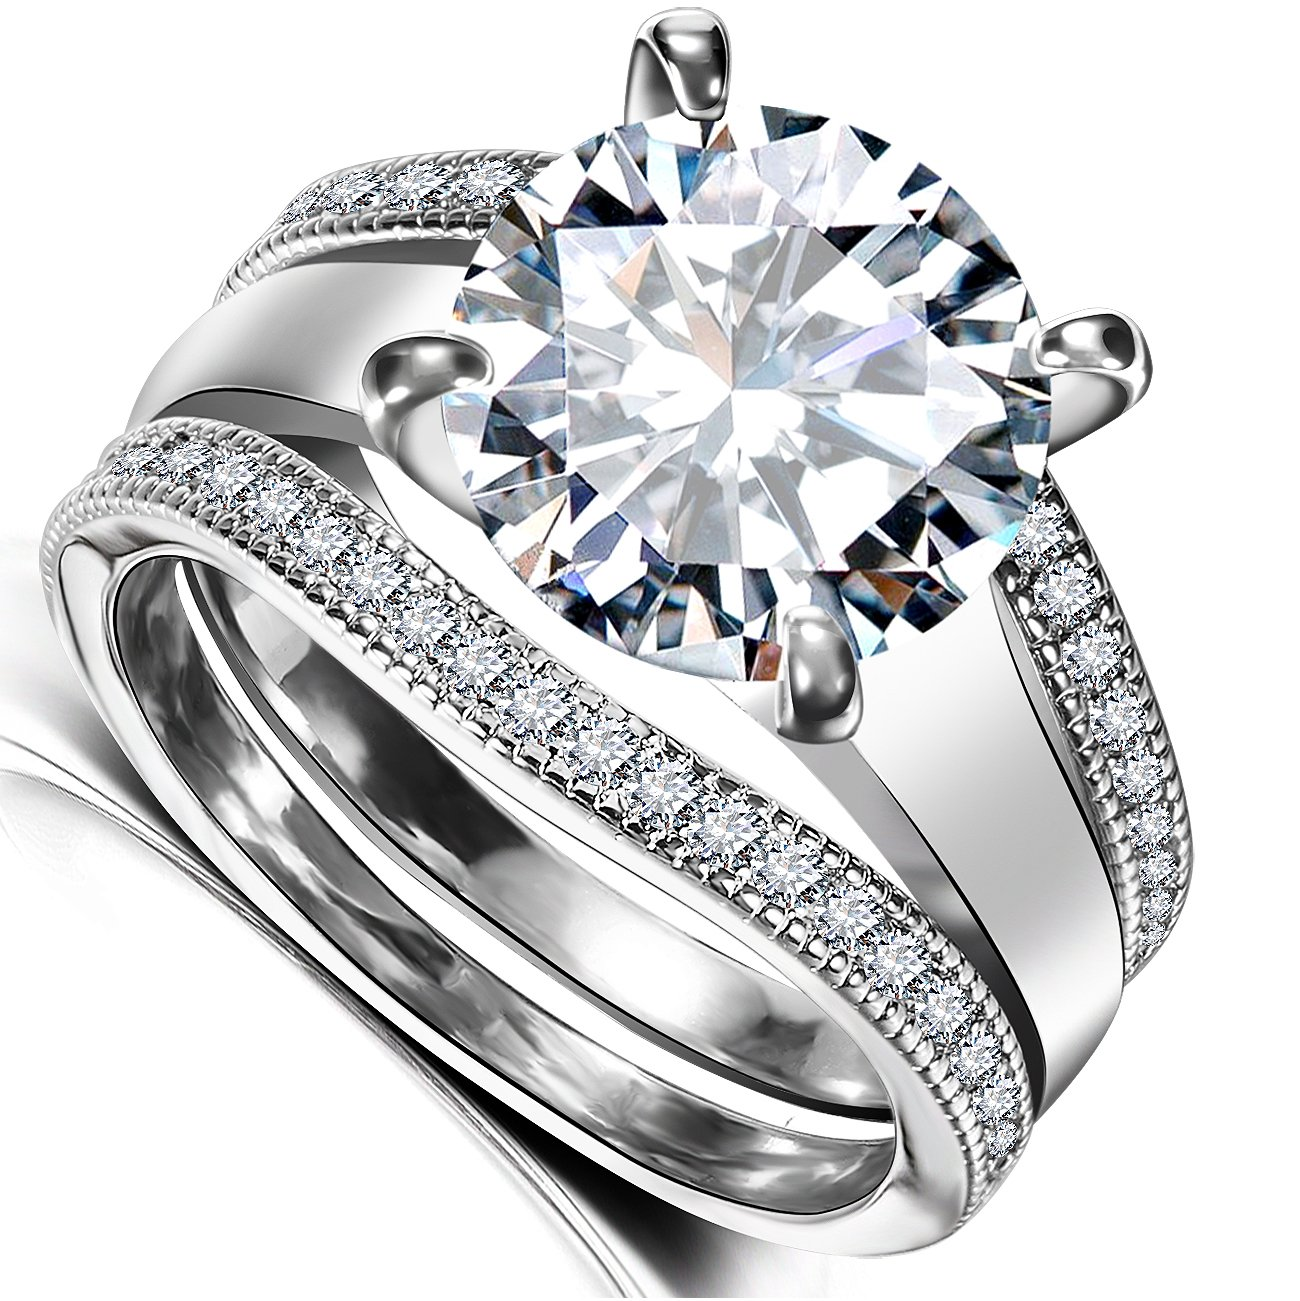 Platinum Plated Bridal Set - Round Cut Cubic Zirconia Rings Women Engagement Ring Set with Wedding Band by Hiyong (Image #2)